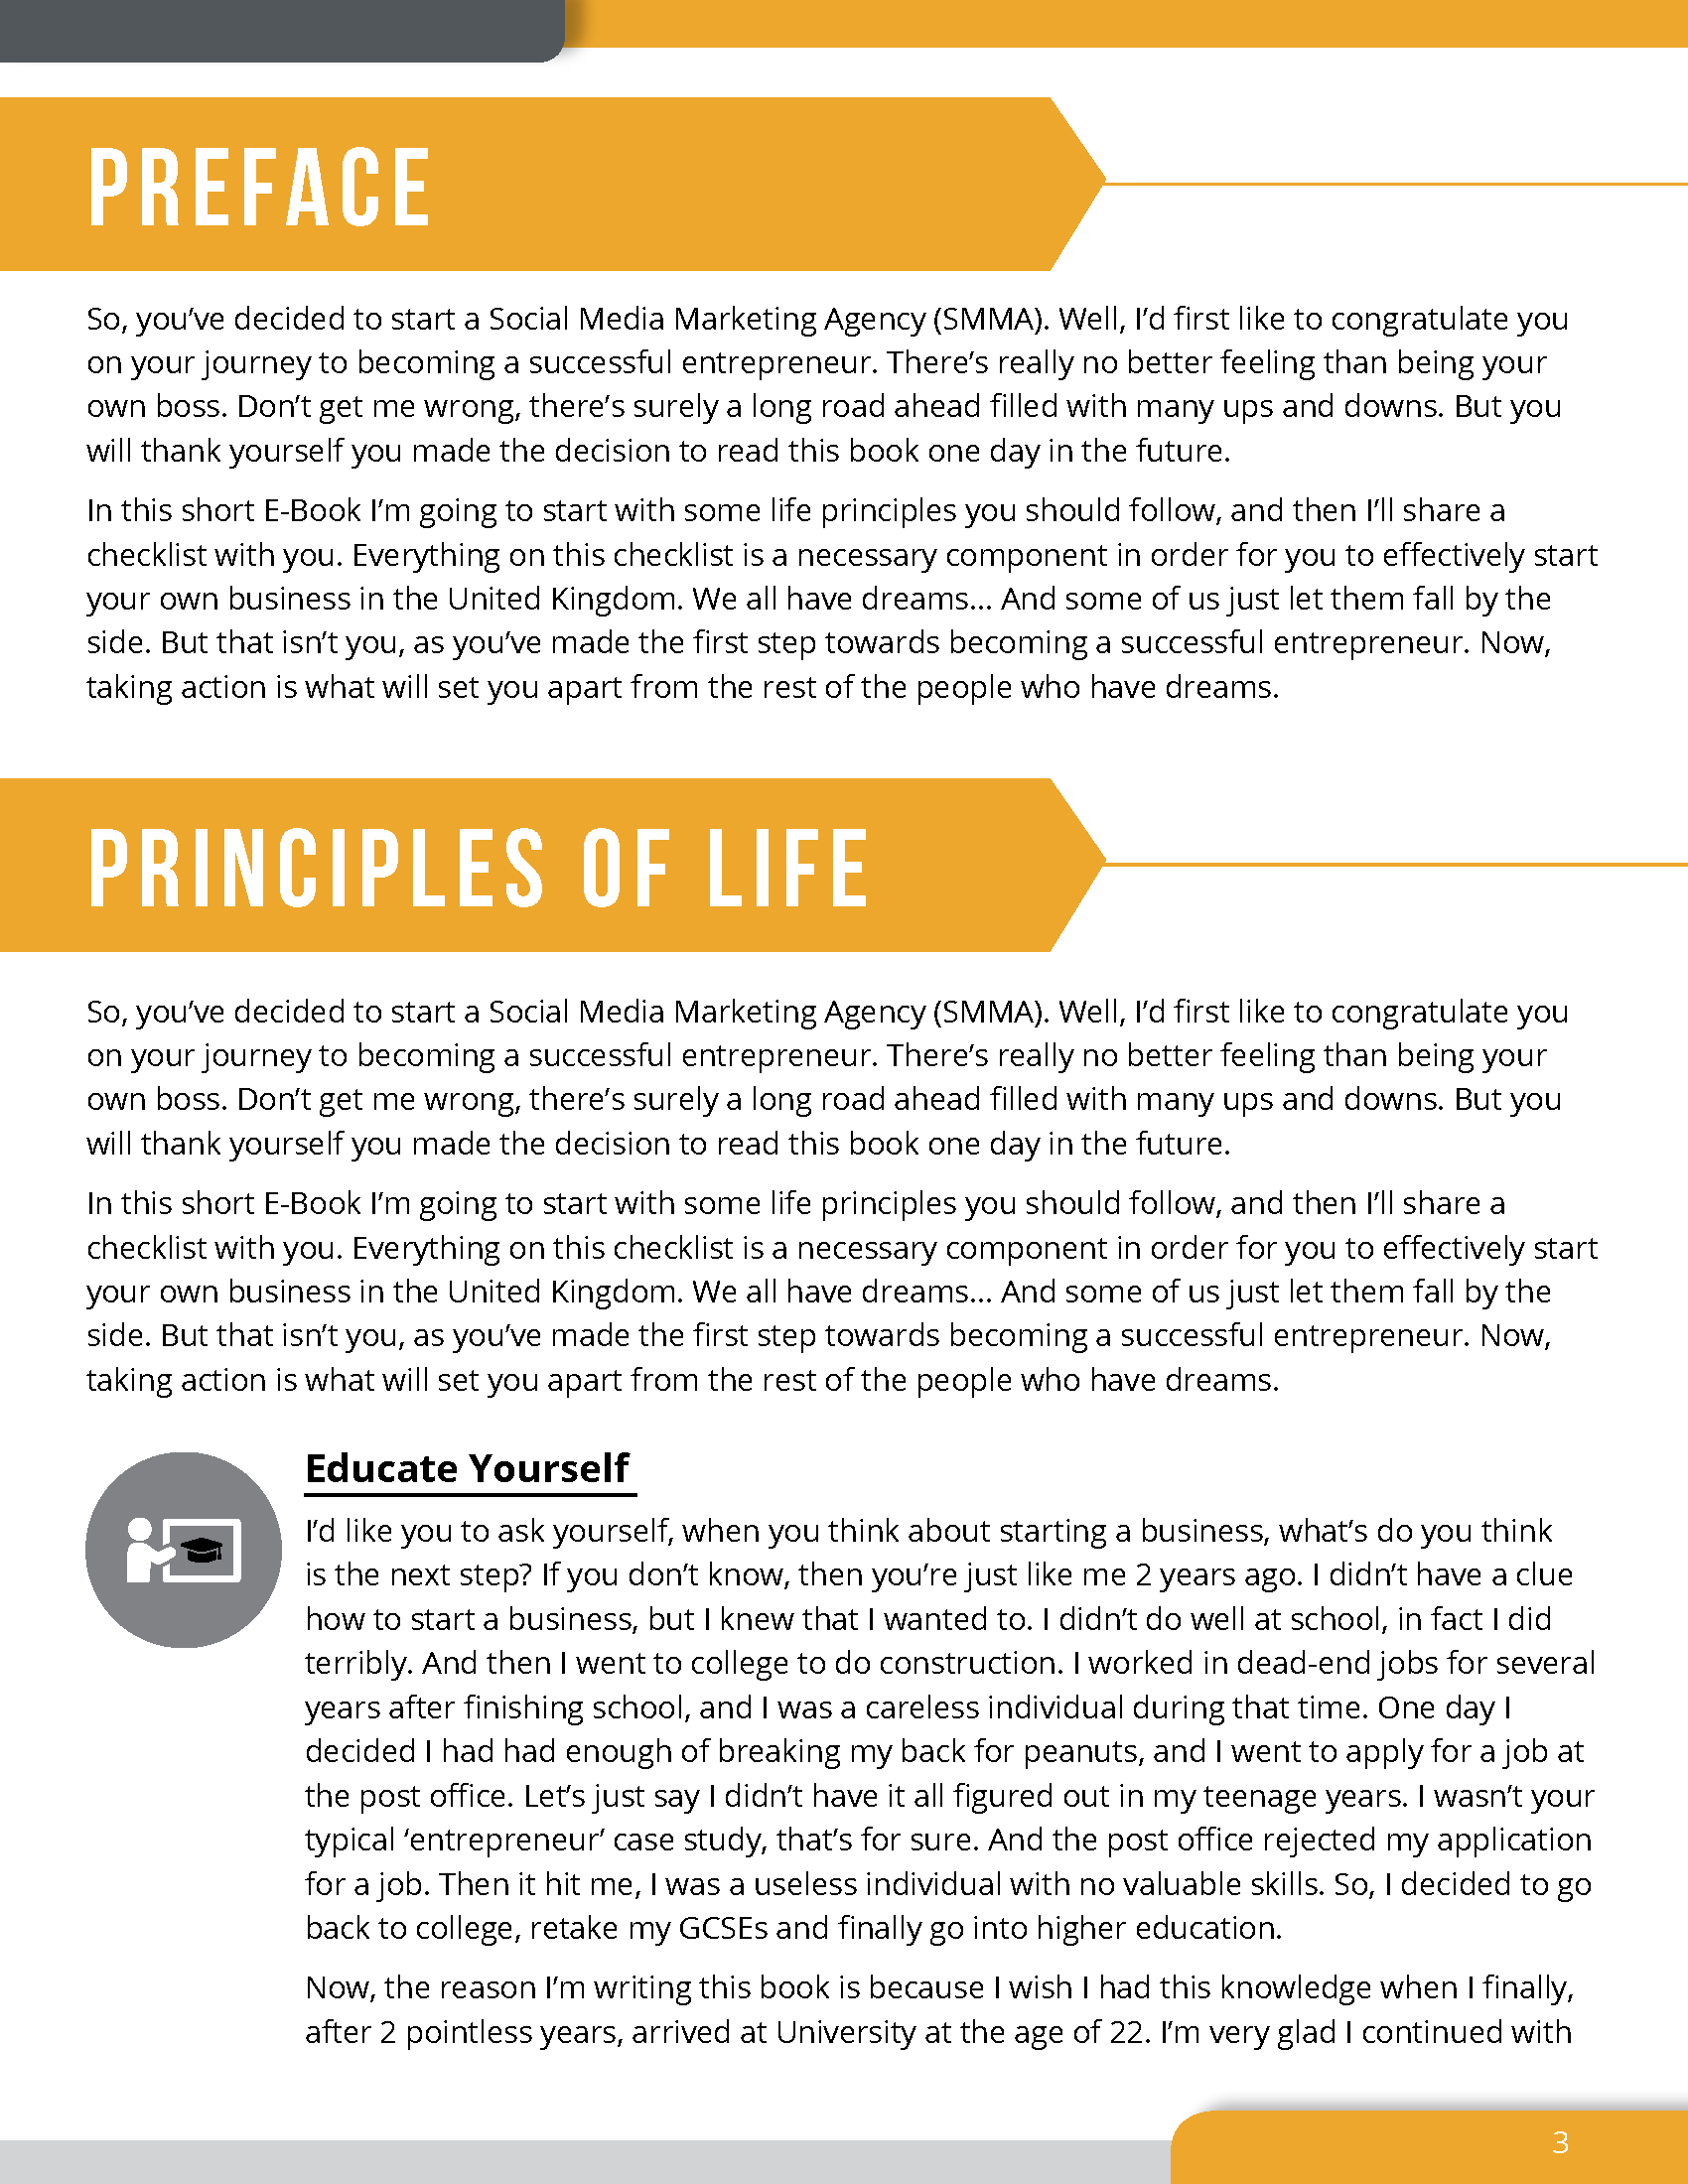 free smma ebook page 1